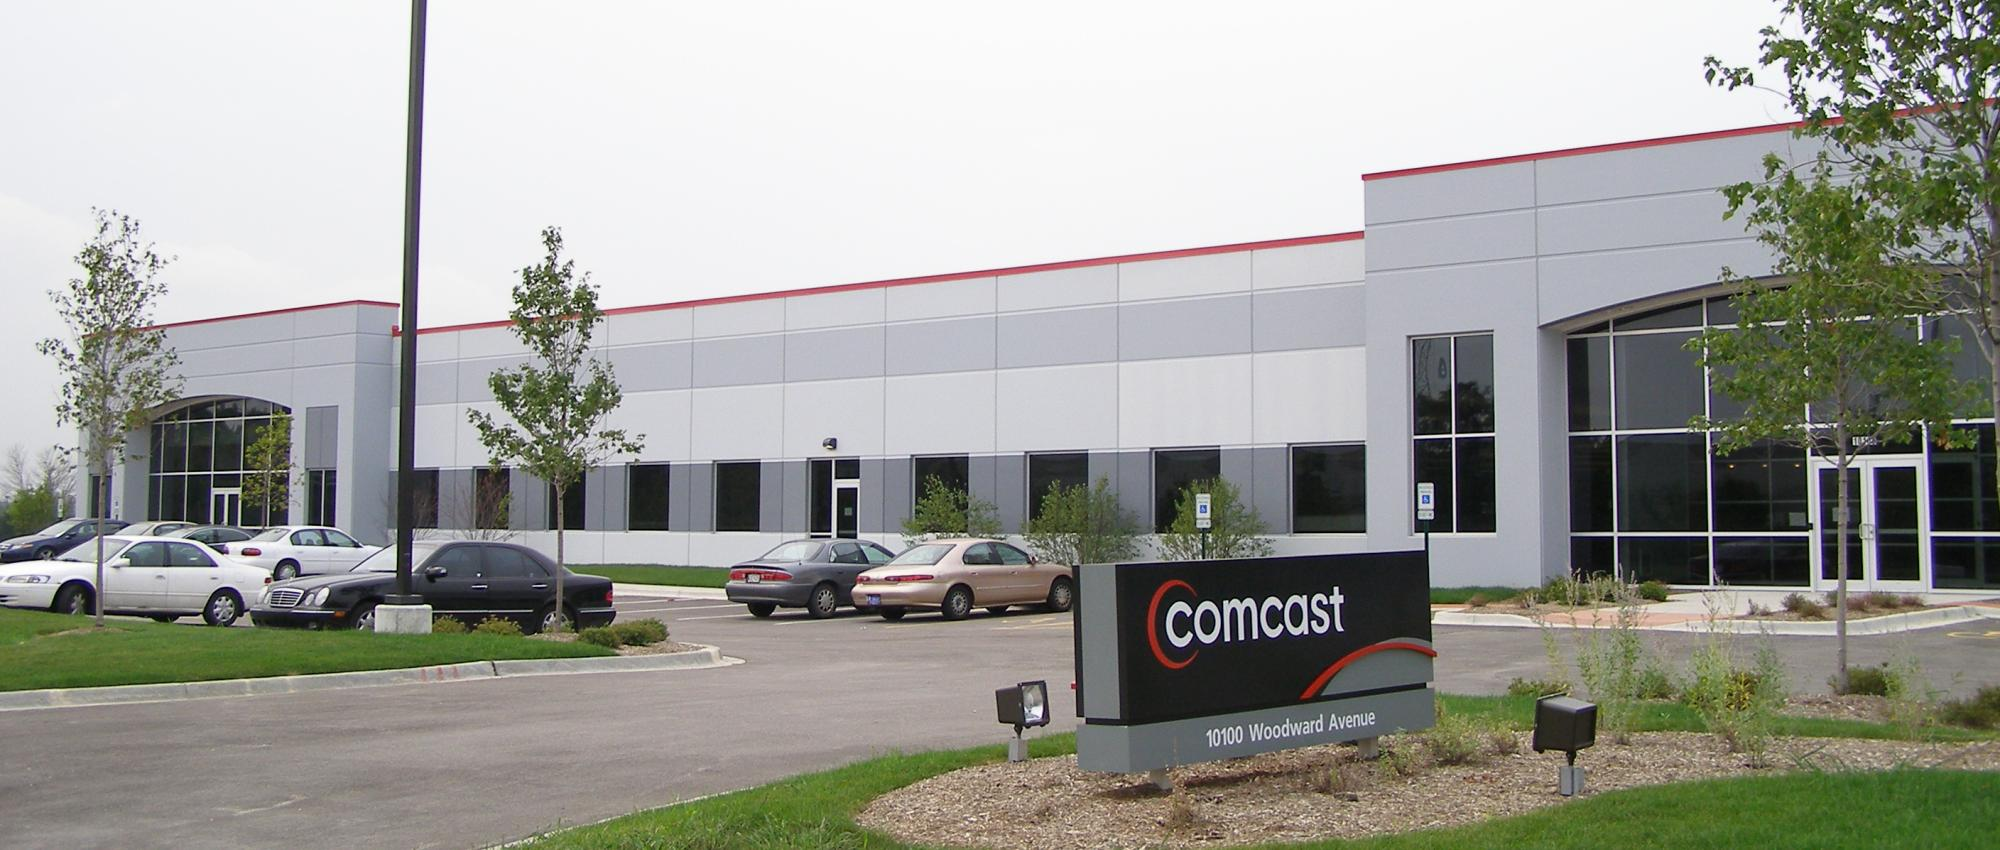 comcast call center